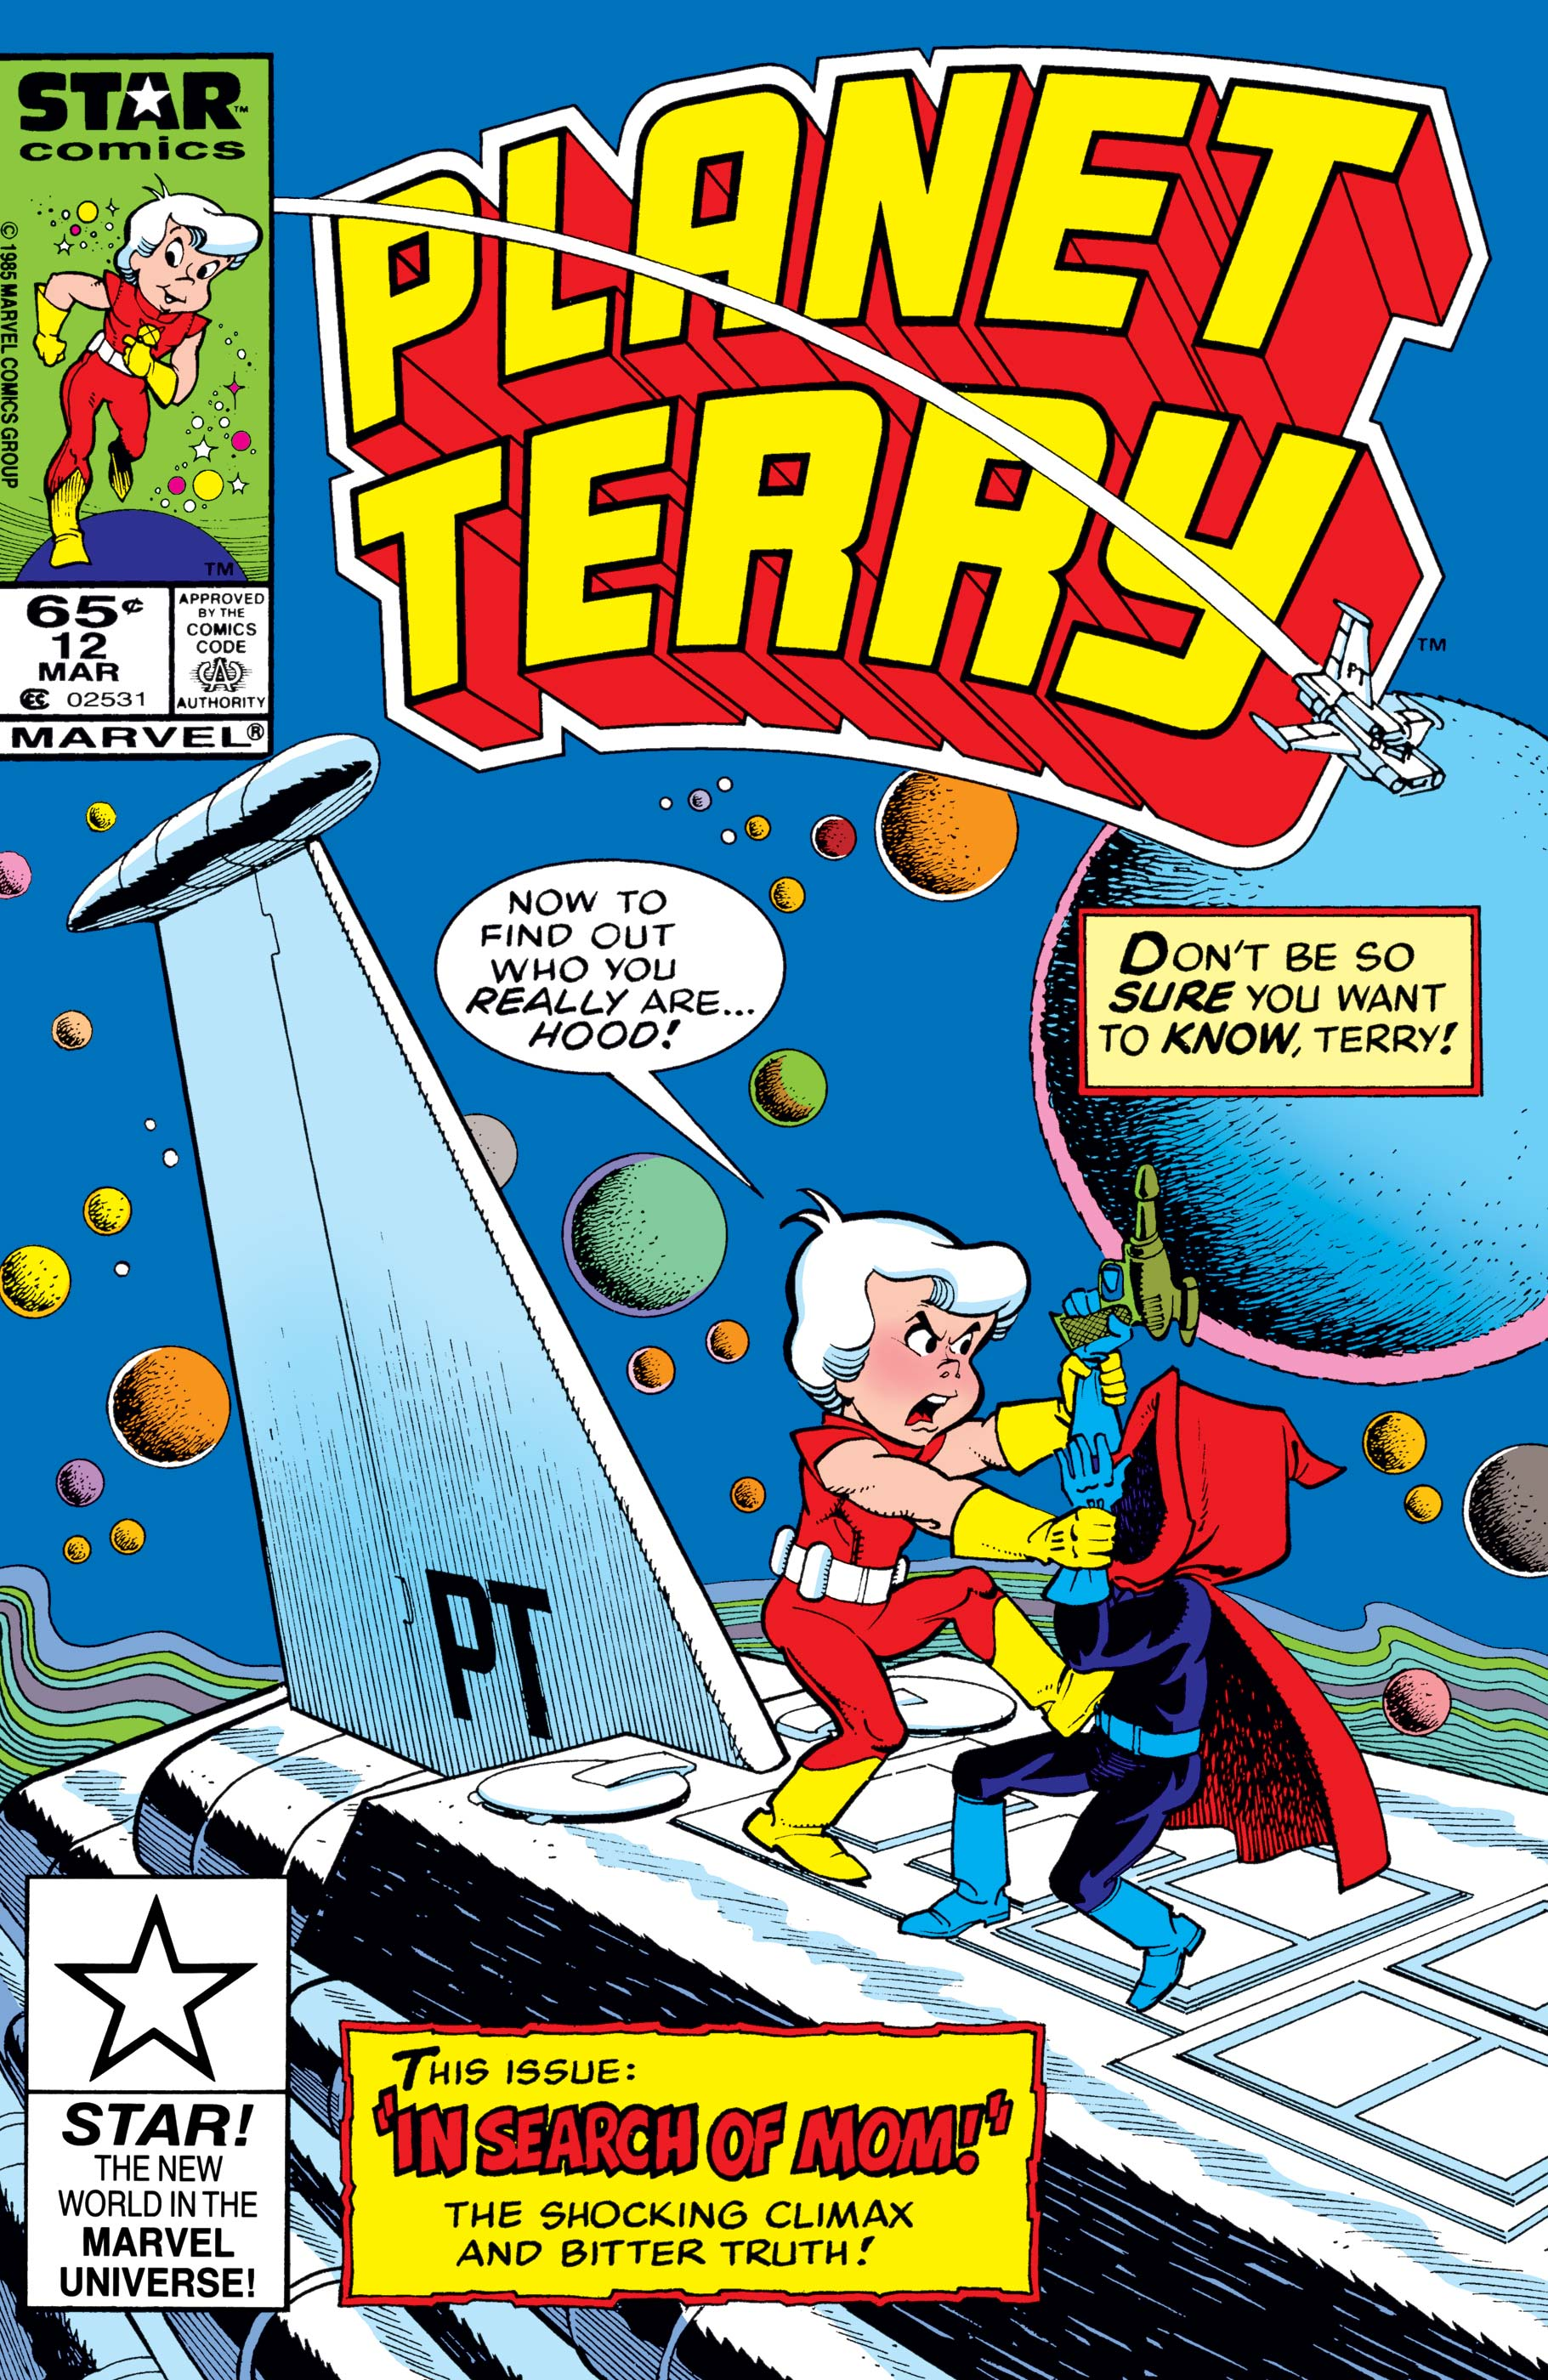 Planet Terry (1985) #12